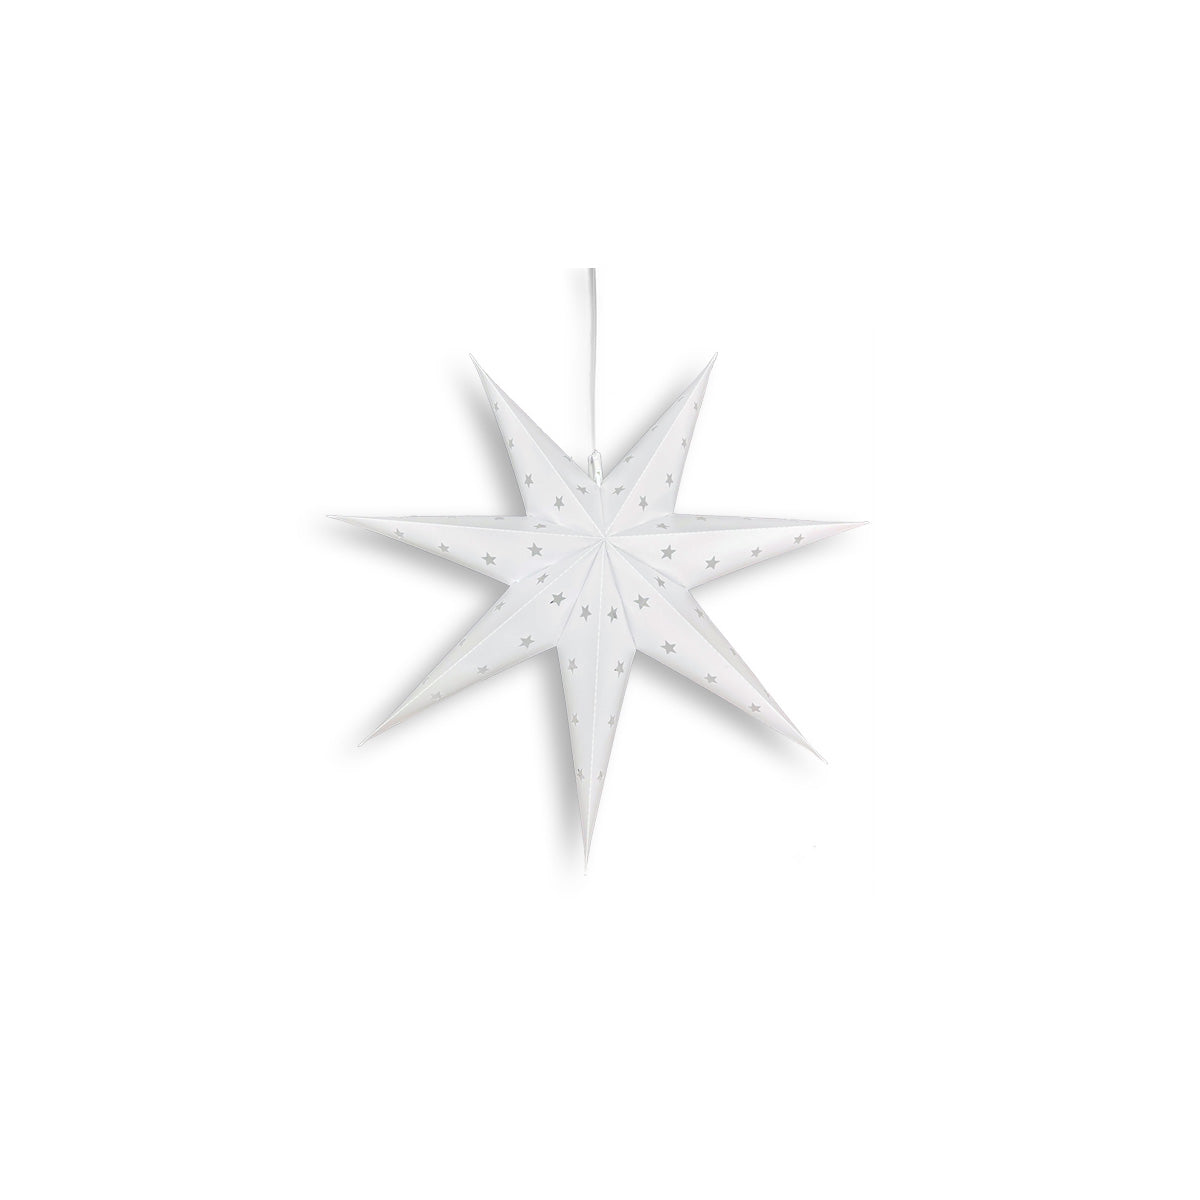 "12"" White 7-Point Weatherproof Star Lantern Lamp, Hanging Decoration (Estimated Arrival: 5/25/21)"